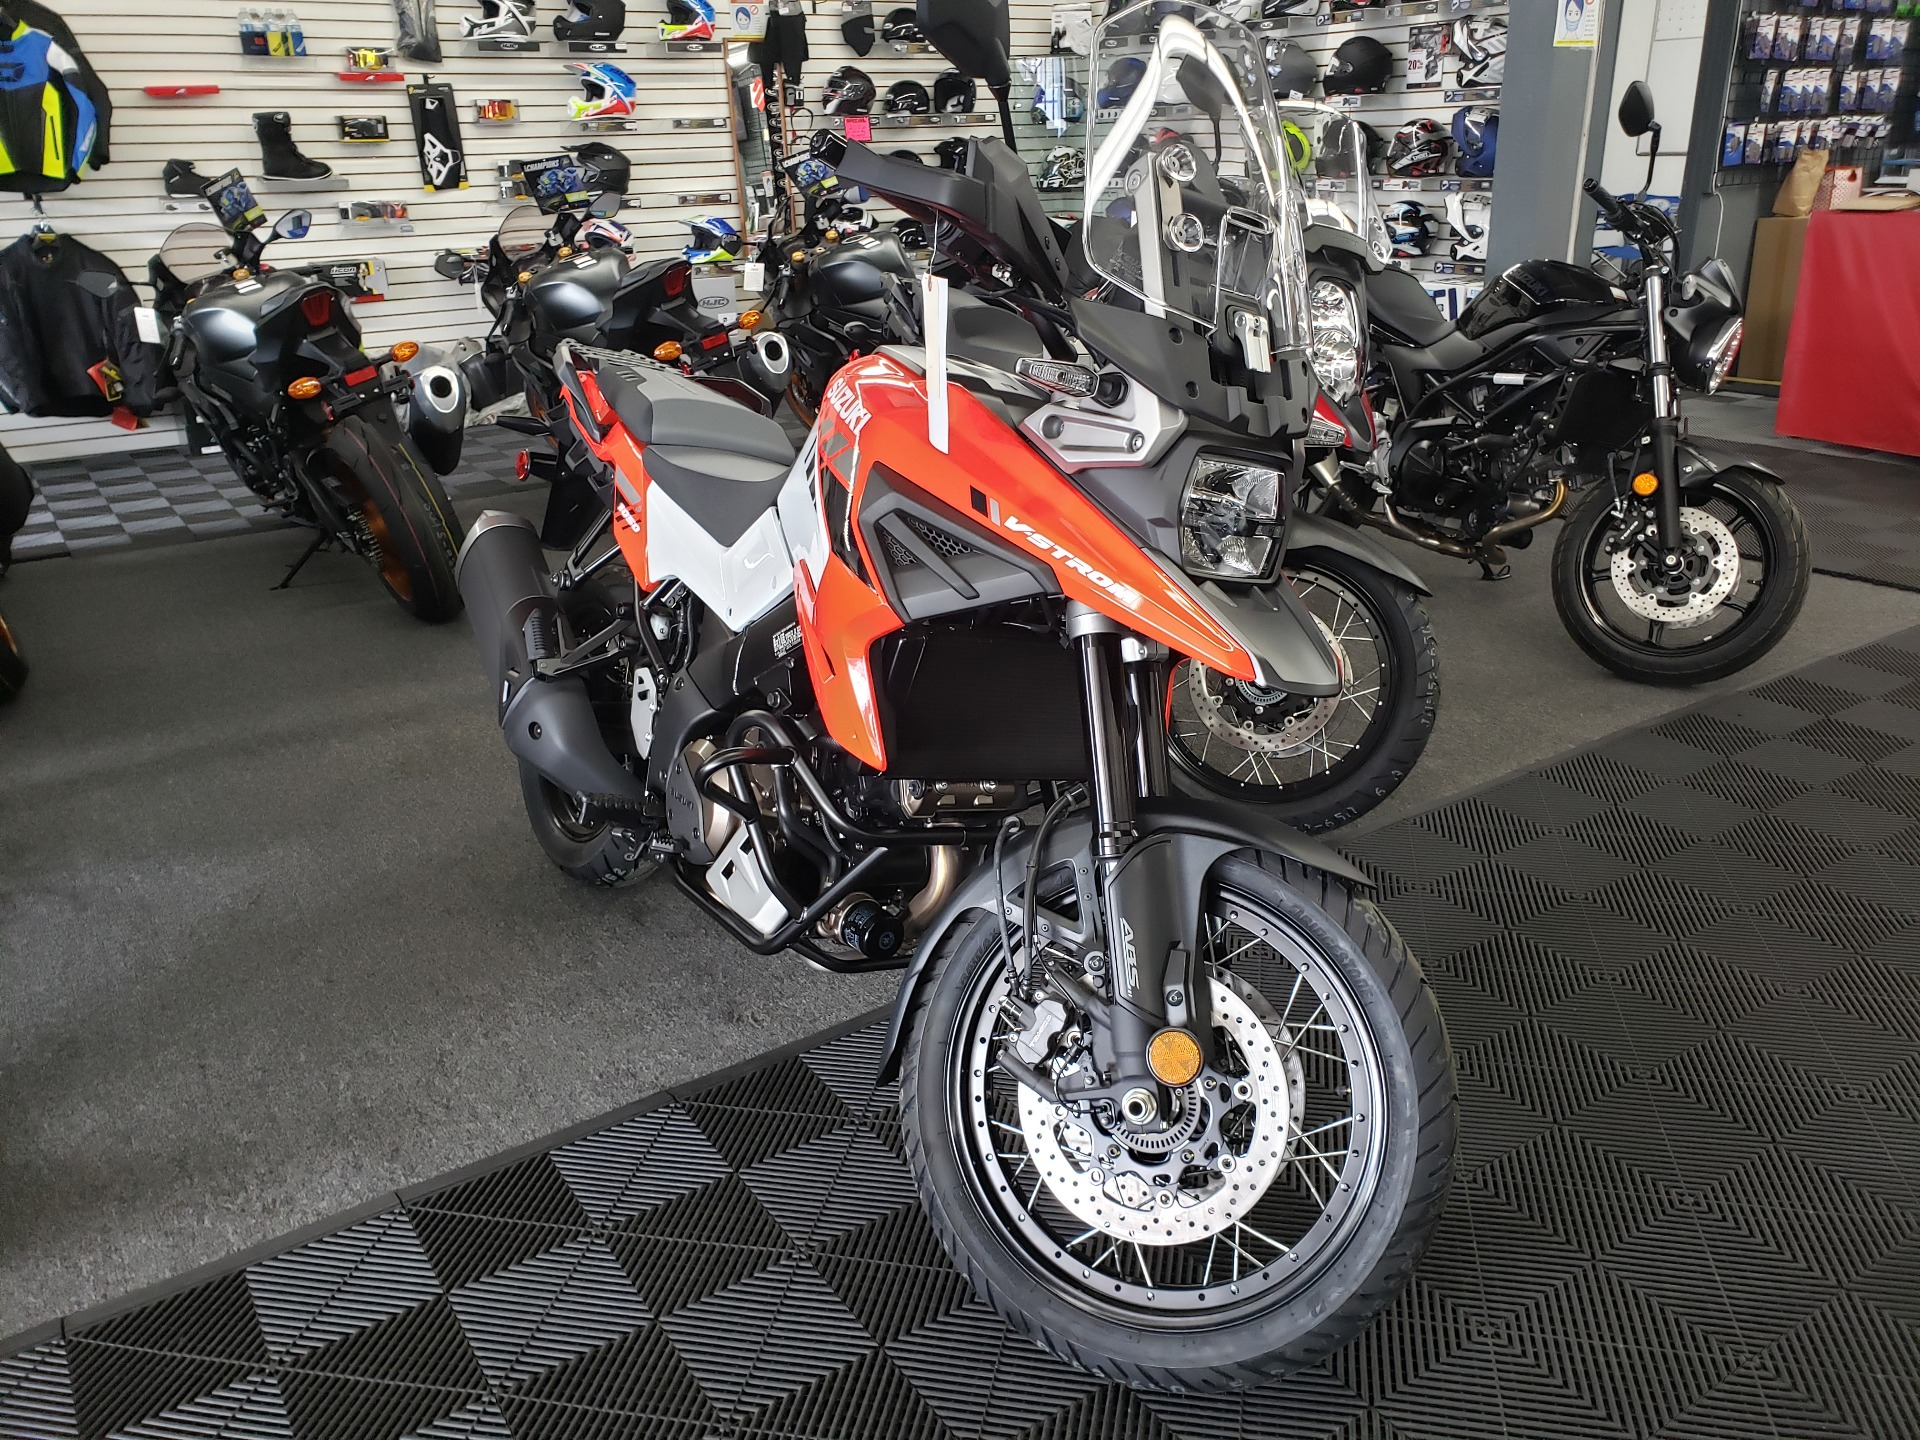 2020 Suzuki V-Strom 1050XT in Van Nuys, California - Photo 4